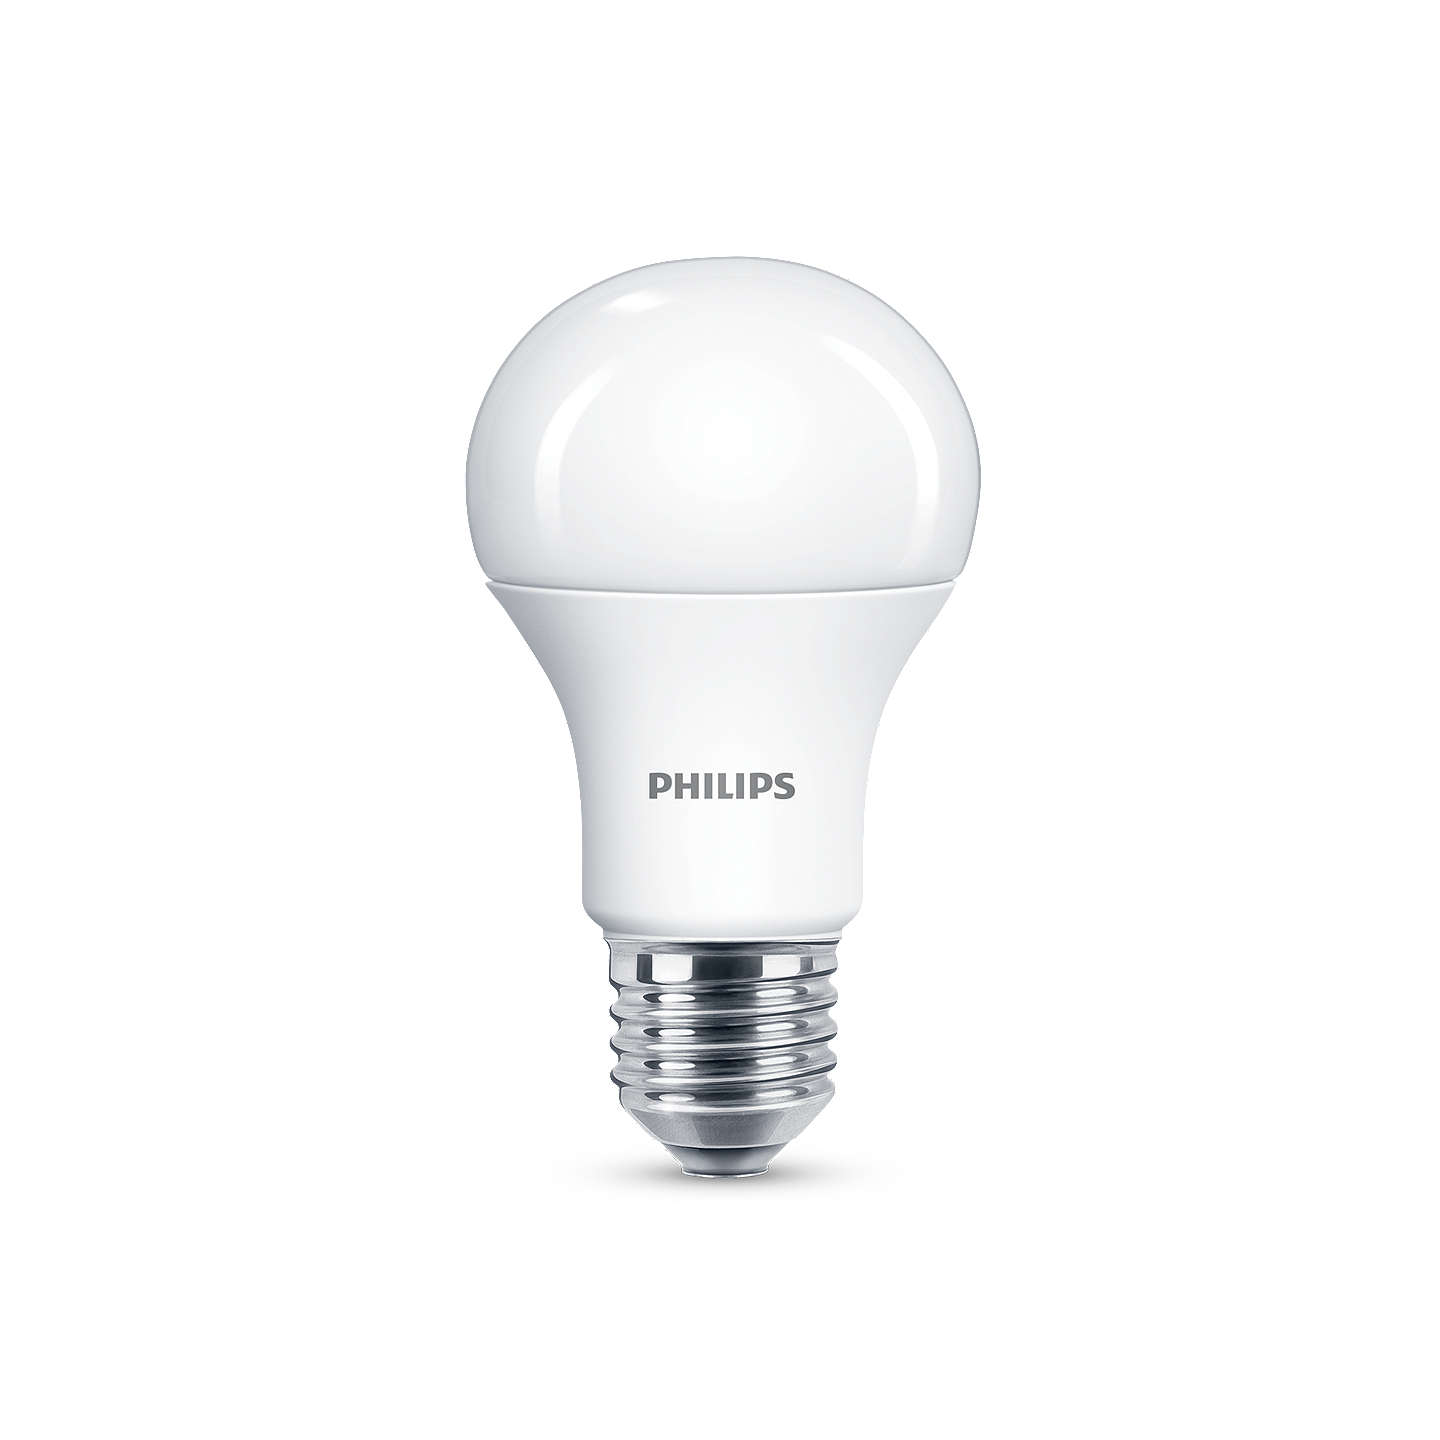 BuyPhilips 10W ES LED Daylight Bulb, Frosted, 6500K Online at johnlewis.com